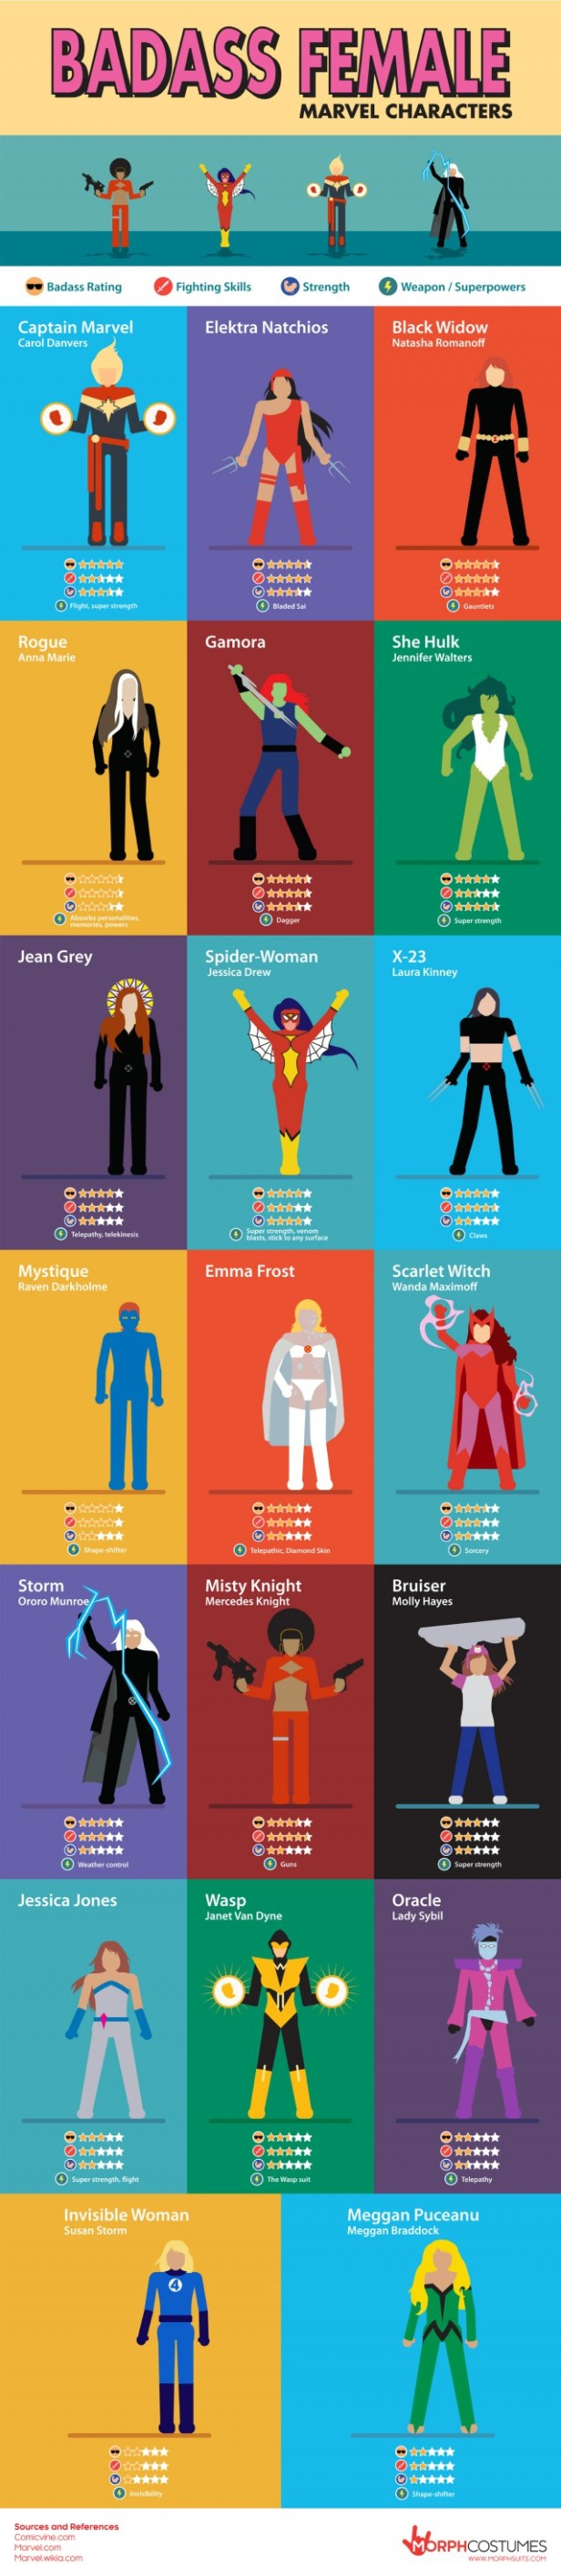 BA_Marvel_Women_Infographic